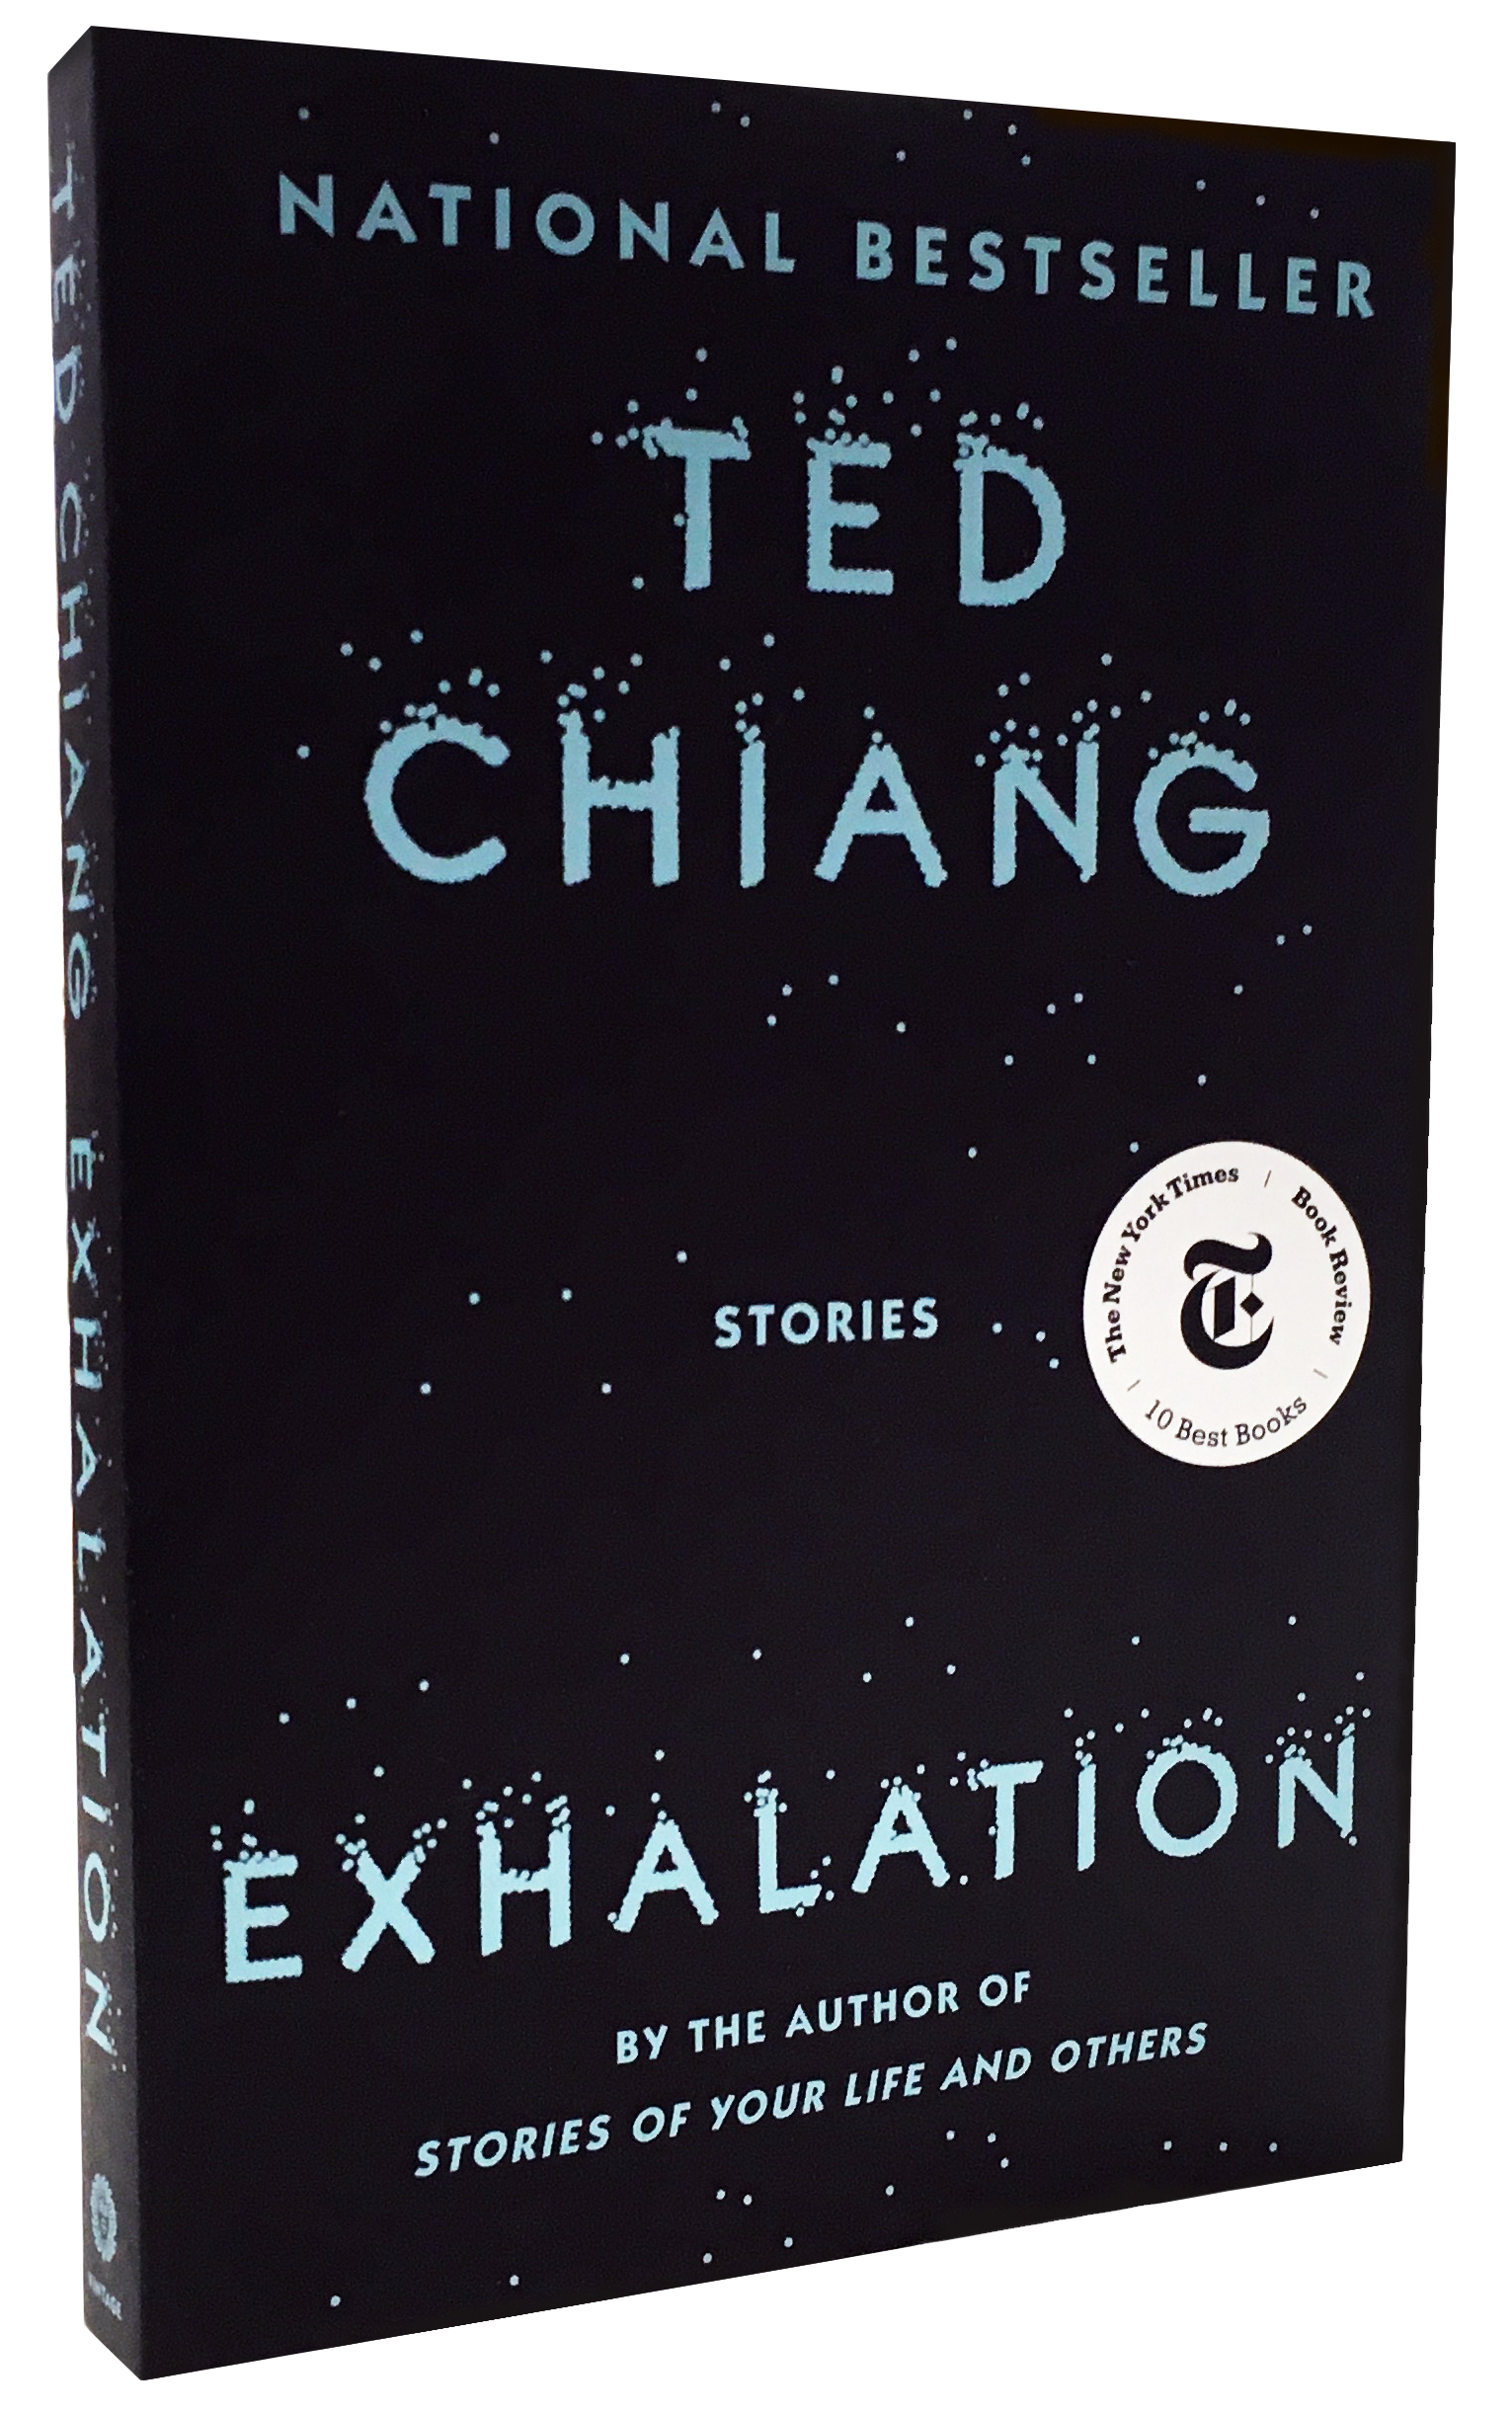 2020 common book: Exhalation by Ted Chiang